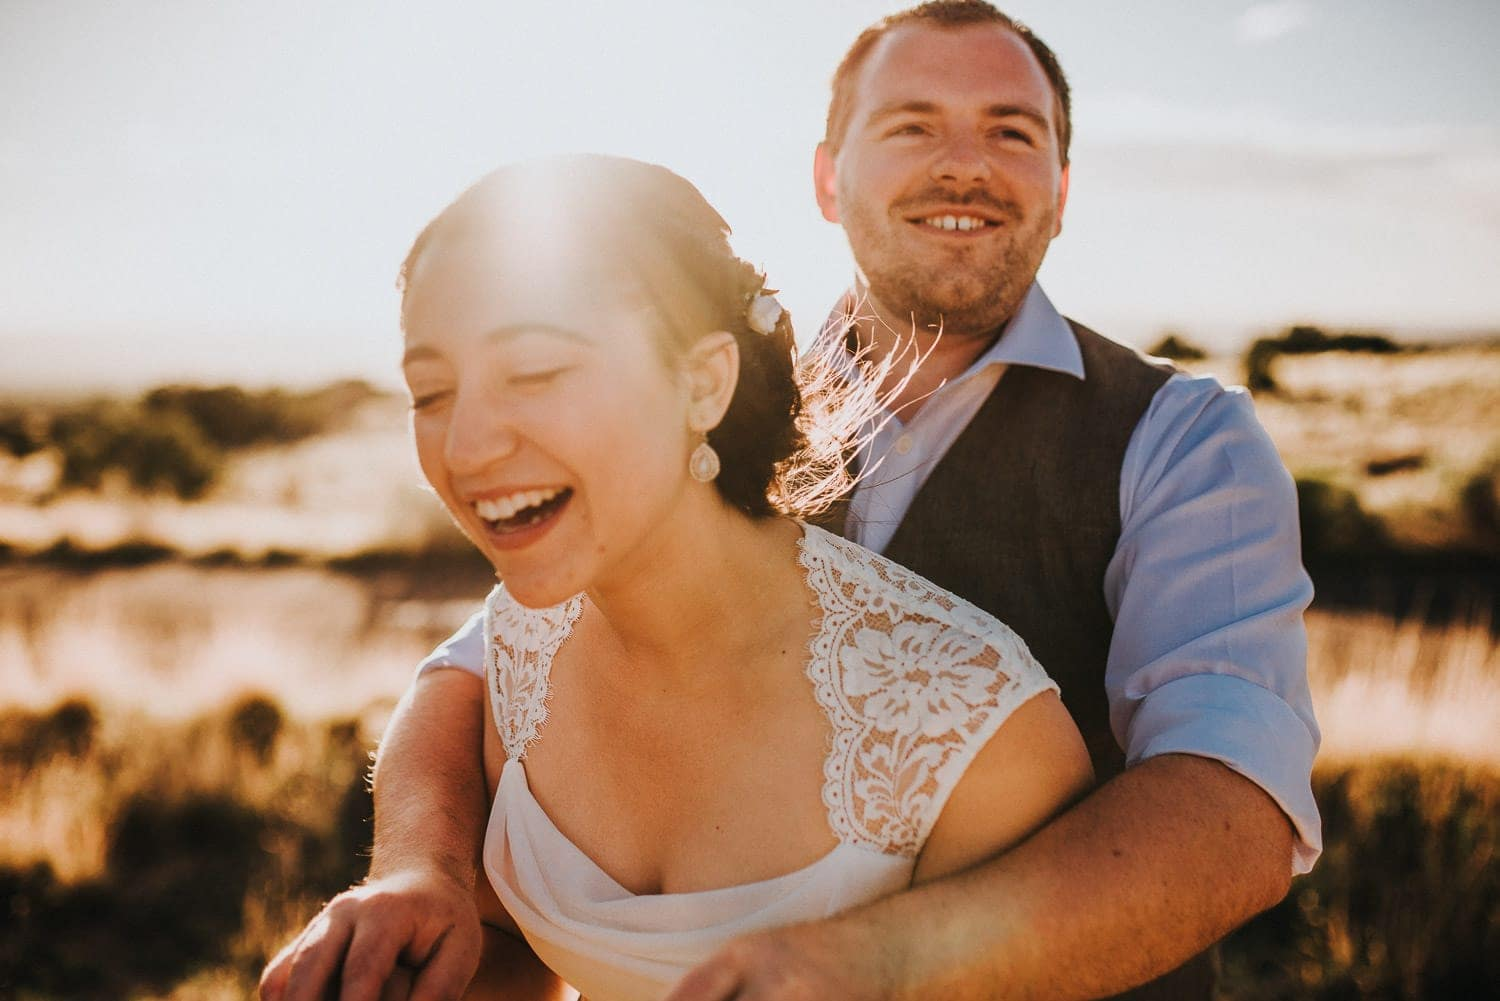 The bride is laughing hysterically as the groom hold her and smiles.